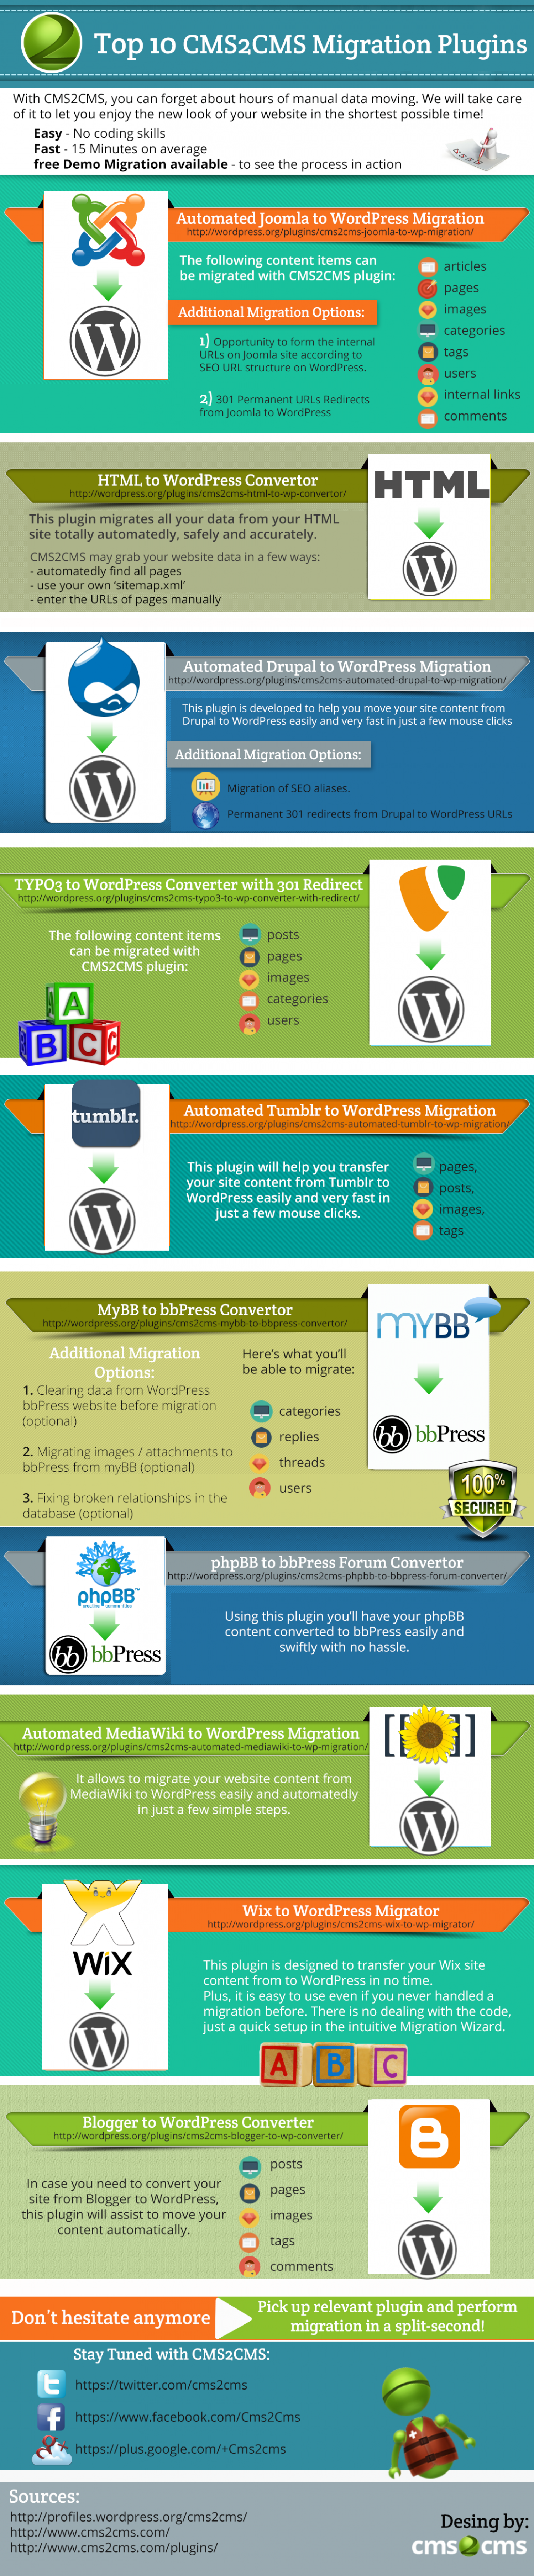 Top 10 CMS2CMS Migration Plugin Infographic